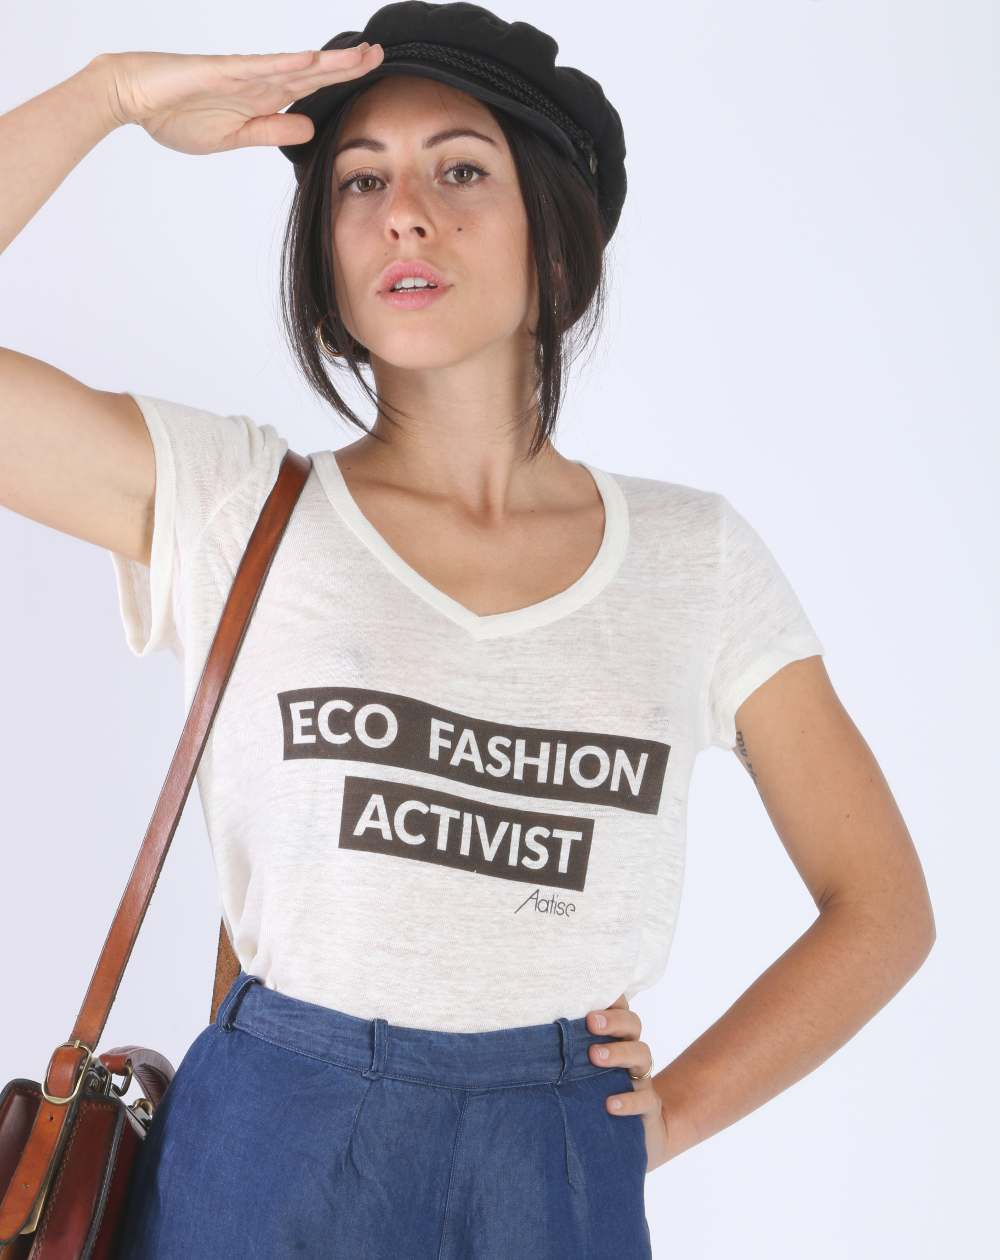 Aatise, la mode éthique écologique et durable made in France ! eco fashion activist t-shirt à texte